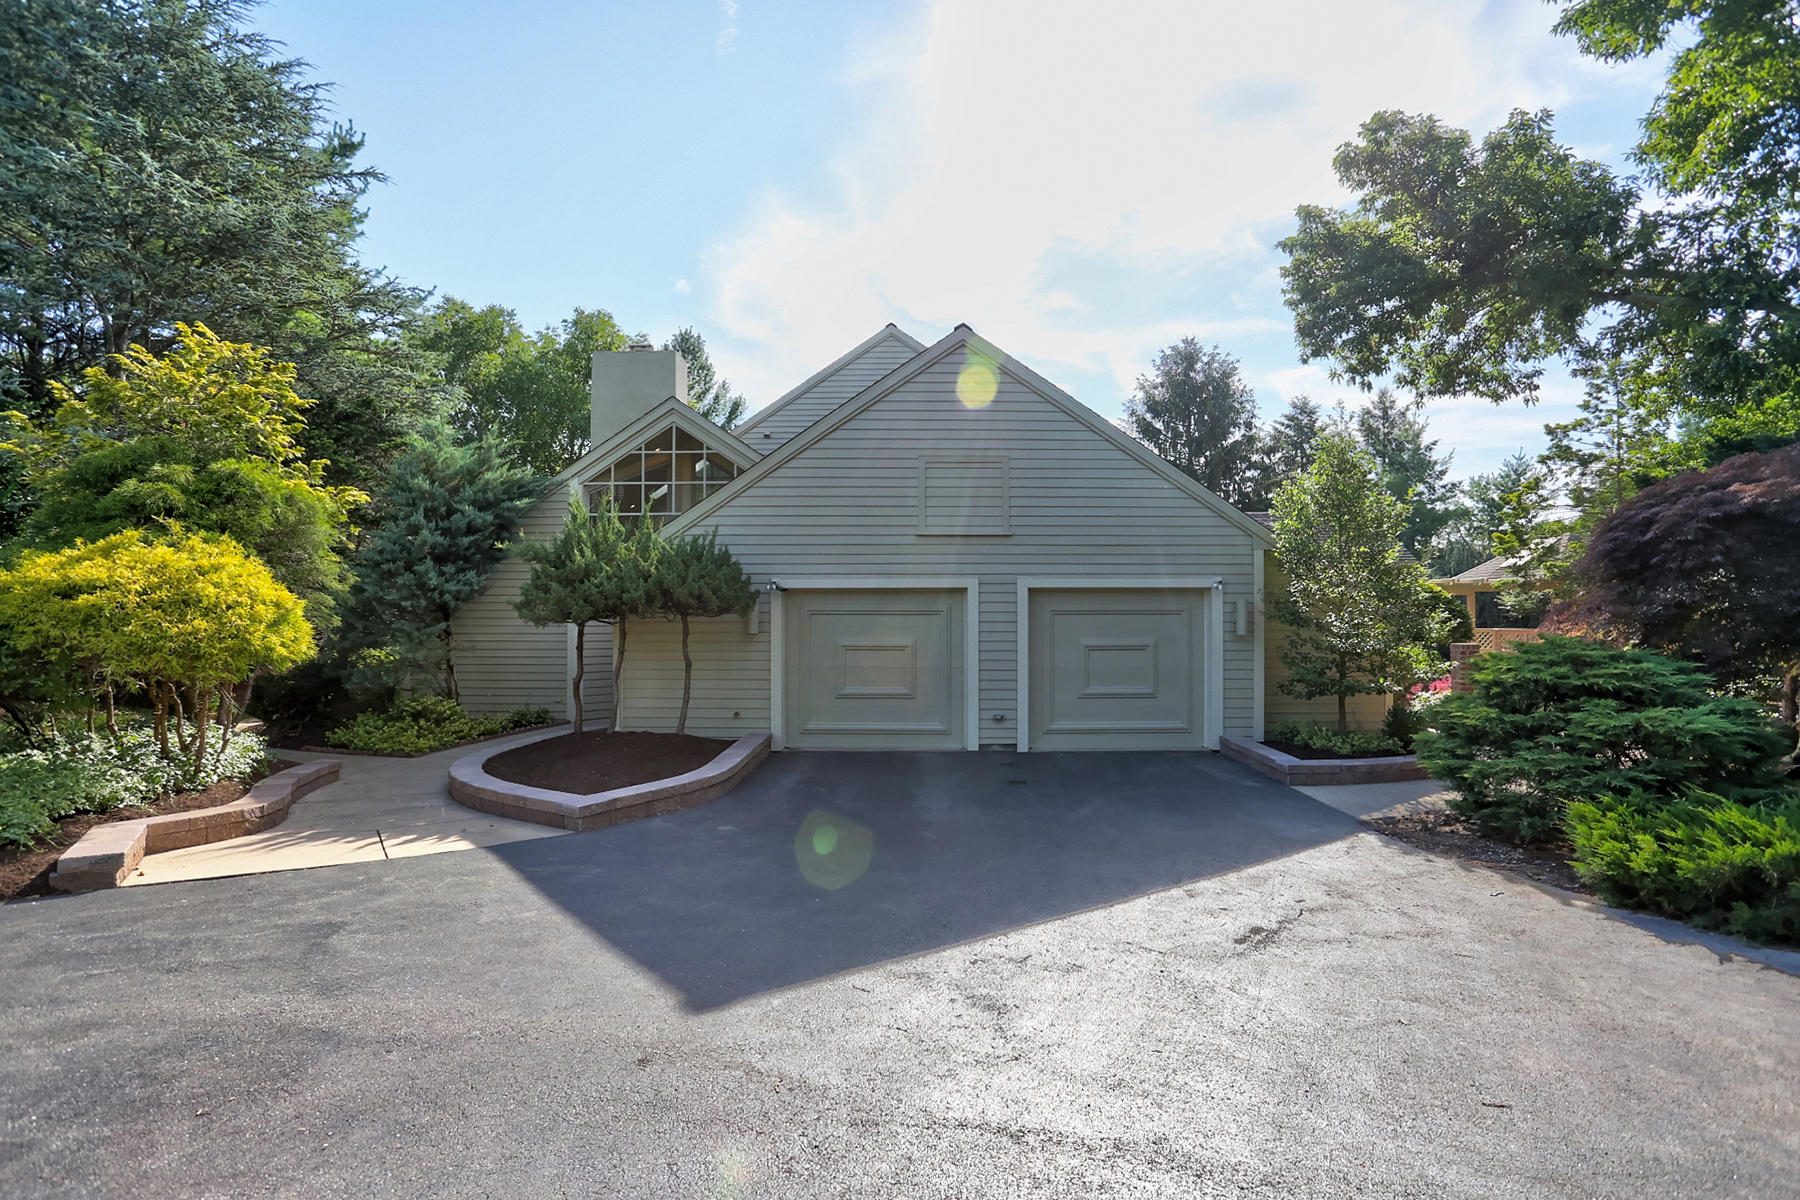 Additional photo for property listing at 1302 Beaconfield Lane  Lancaster, Pennsylvania 17601 United States